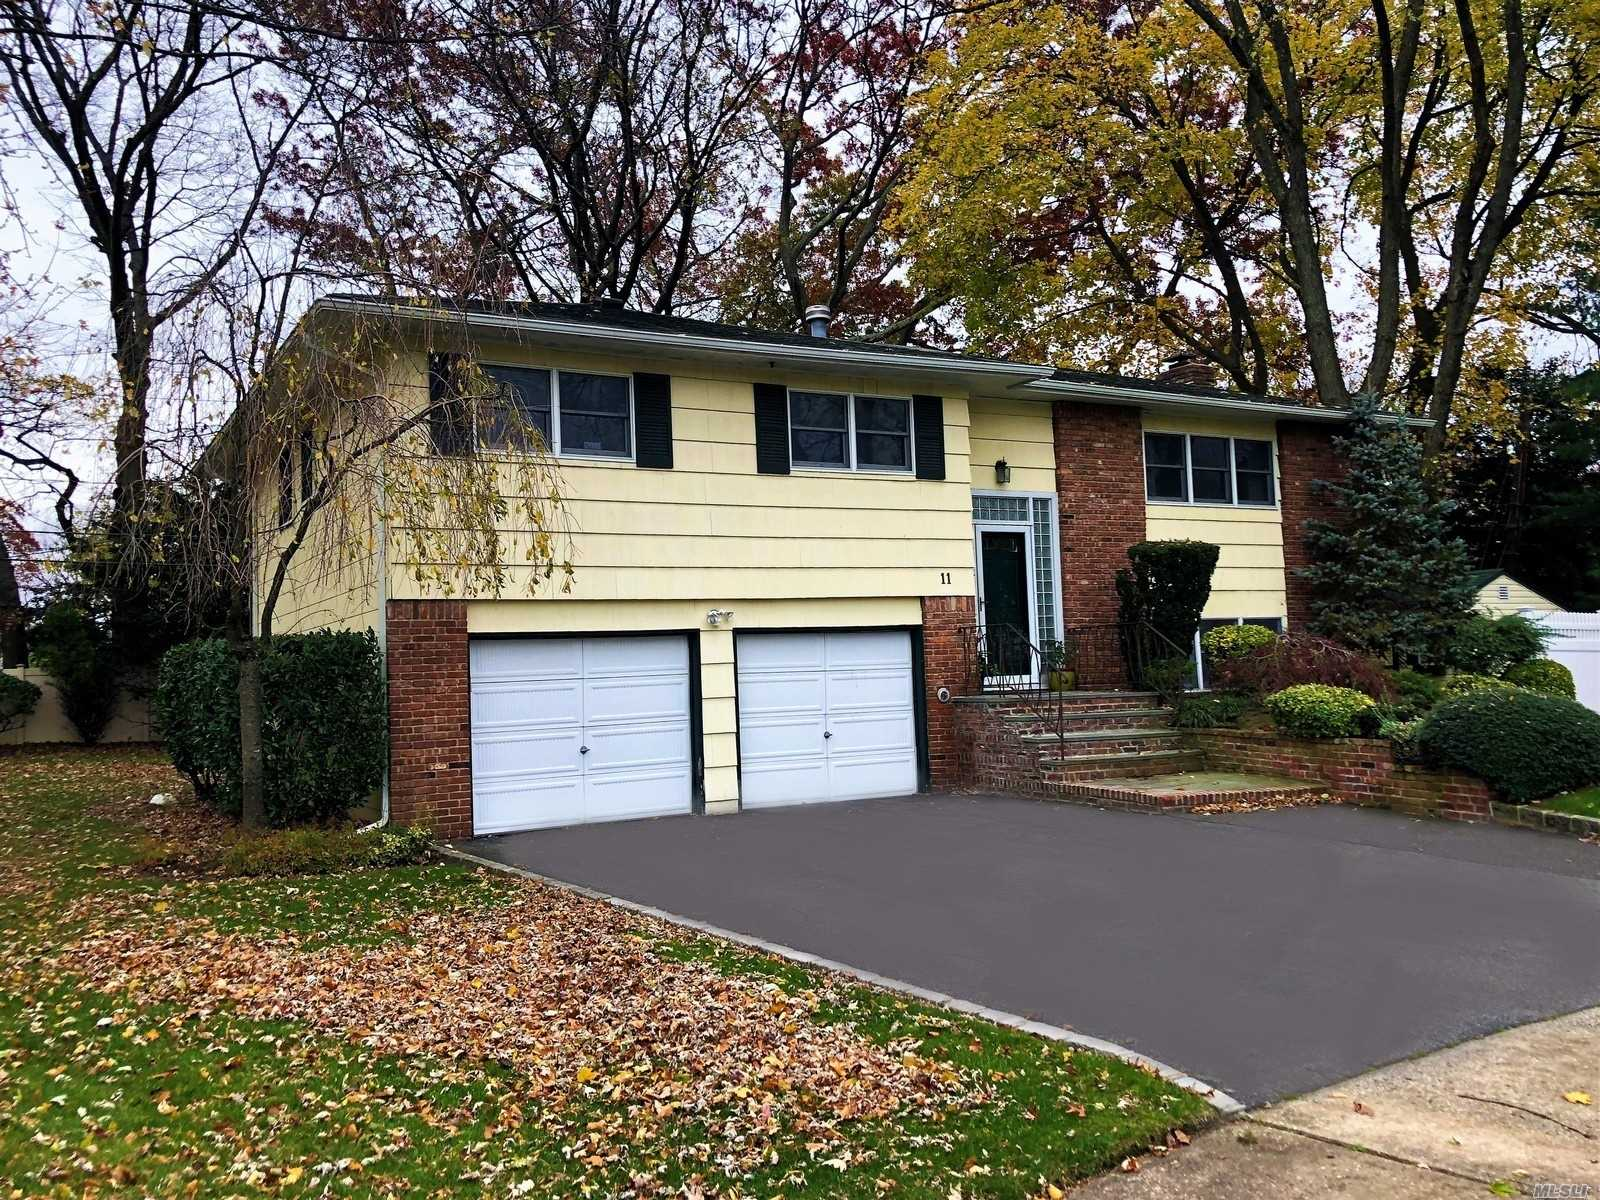 Location, Location, Location! This Lovely Home Features 4 Bedrooms, 3 Baths In A Quiet Cul-De-Sac, Syosset Schools. Hardwood Floors, Cac, Igs, 2 Car Garage, Alarm, Generator.